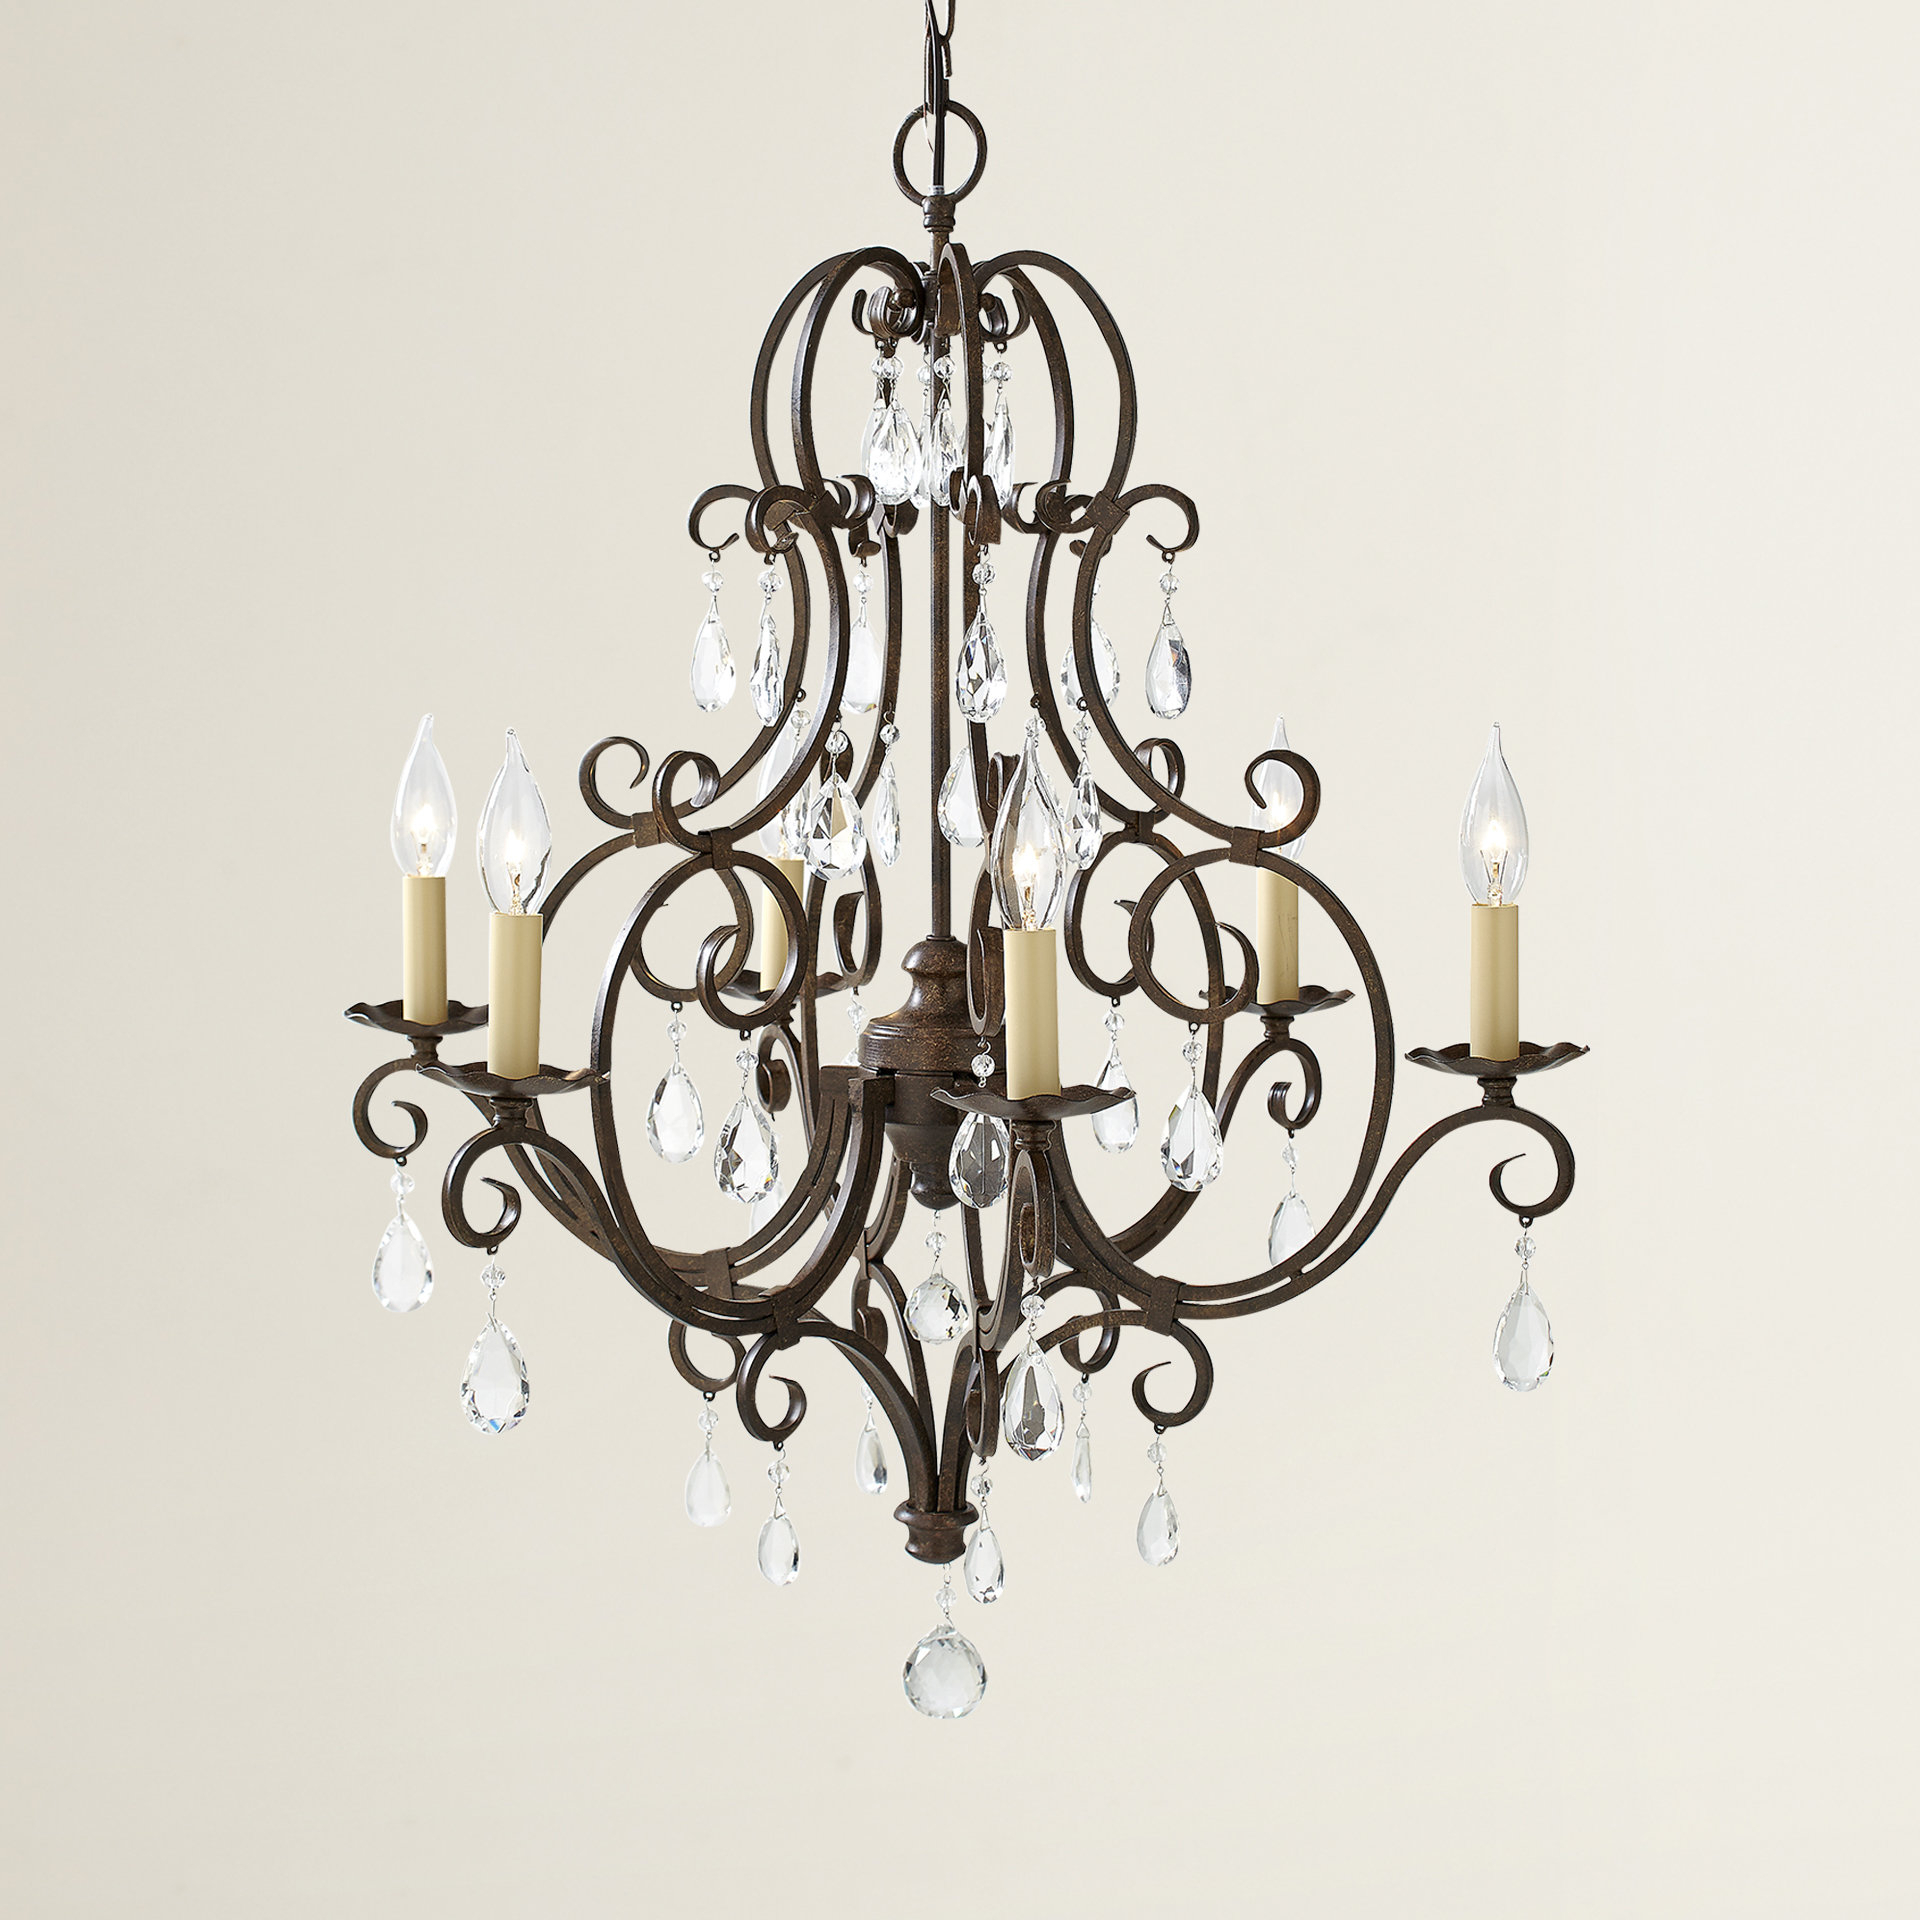 Royall 6 Light Candle Style Chandelier With Gaines 9 Light Candle Style Chandeliers (Gallery 21 of 30)